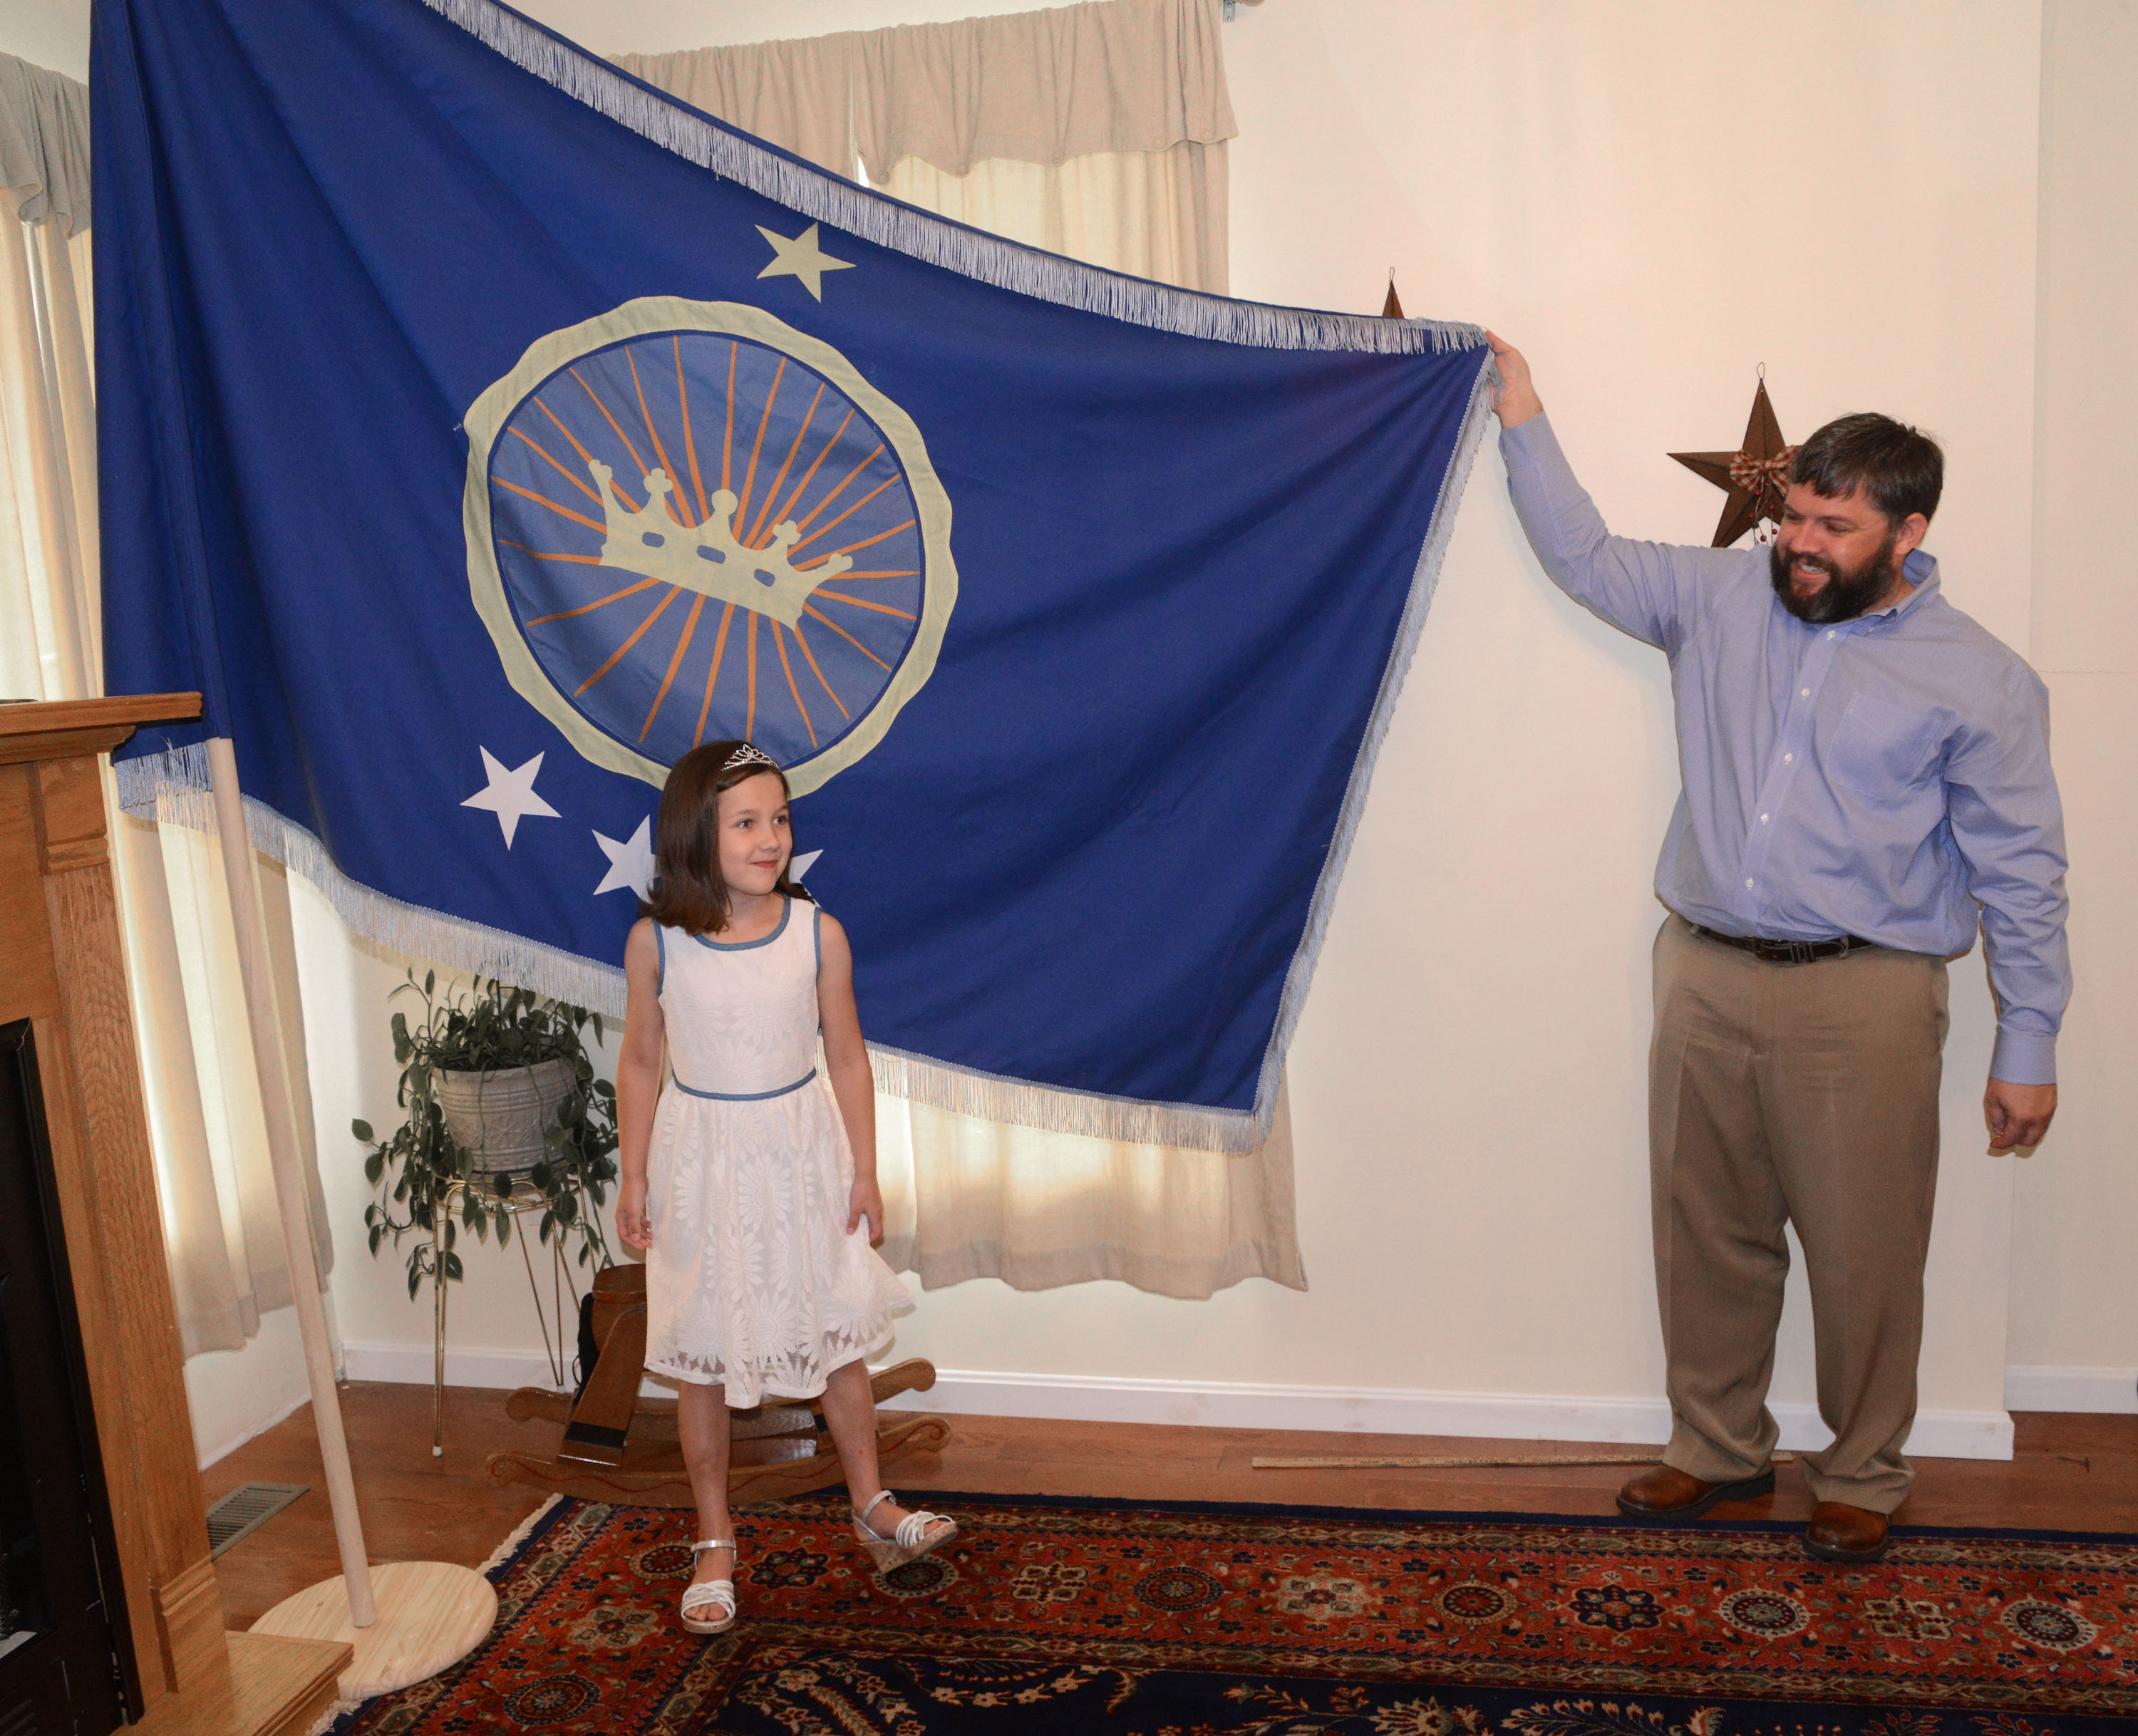 Jeremiah Heaton and his seven year-old daughter, Princess Emily, show the flag on July 2, 2014, in Abingdon, Virginia, that their family designed as they try to claim a piece of land in the Eastern African region of Bir Tawil.